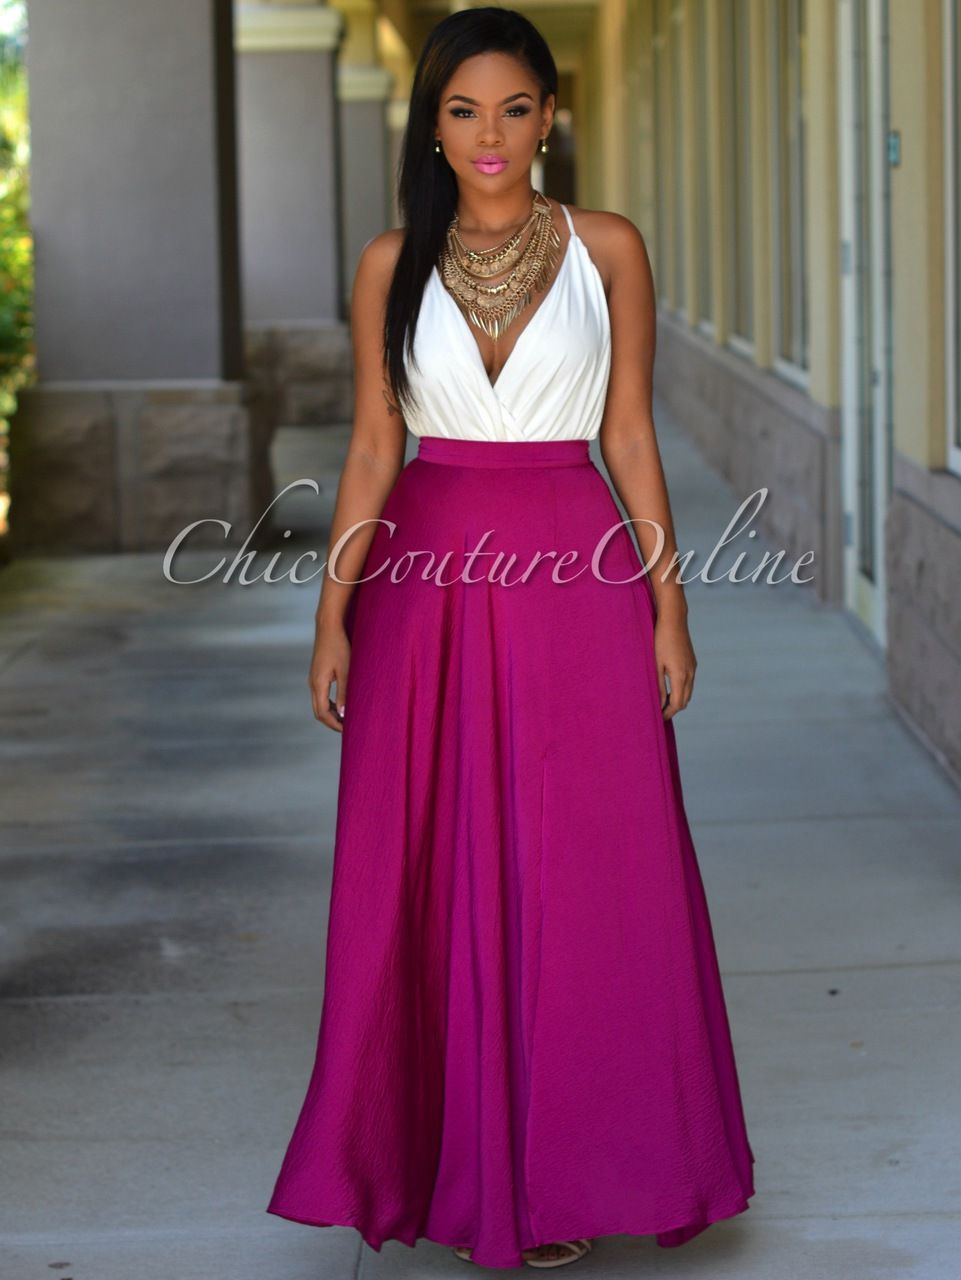 Chic Couture Online - Tiffany Magenta Slit Luxe Maxi Skirt, (http ...